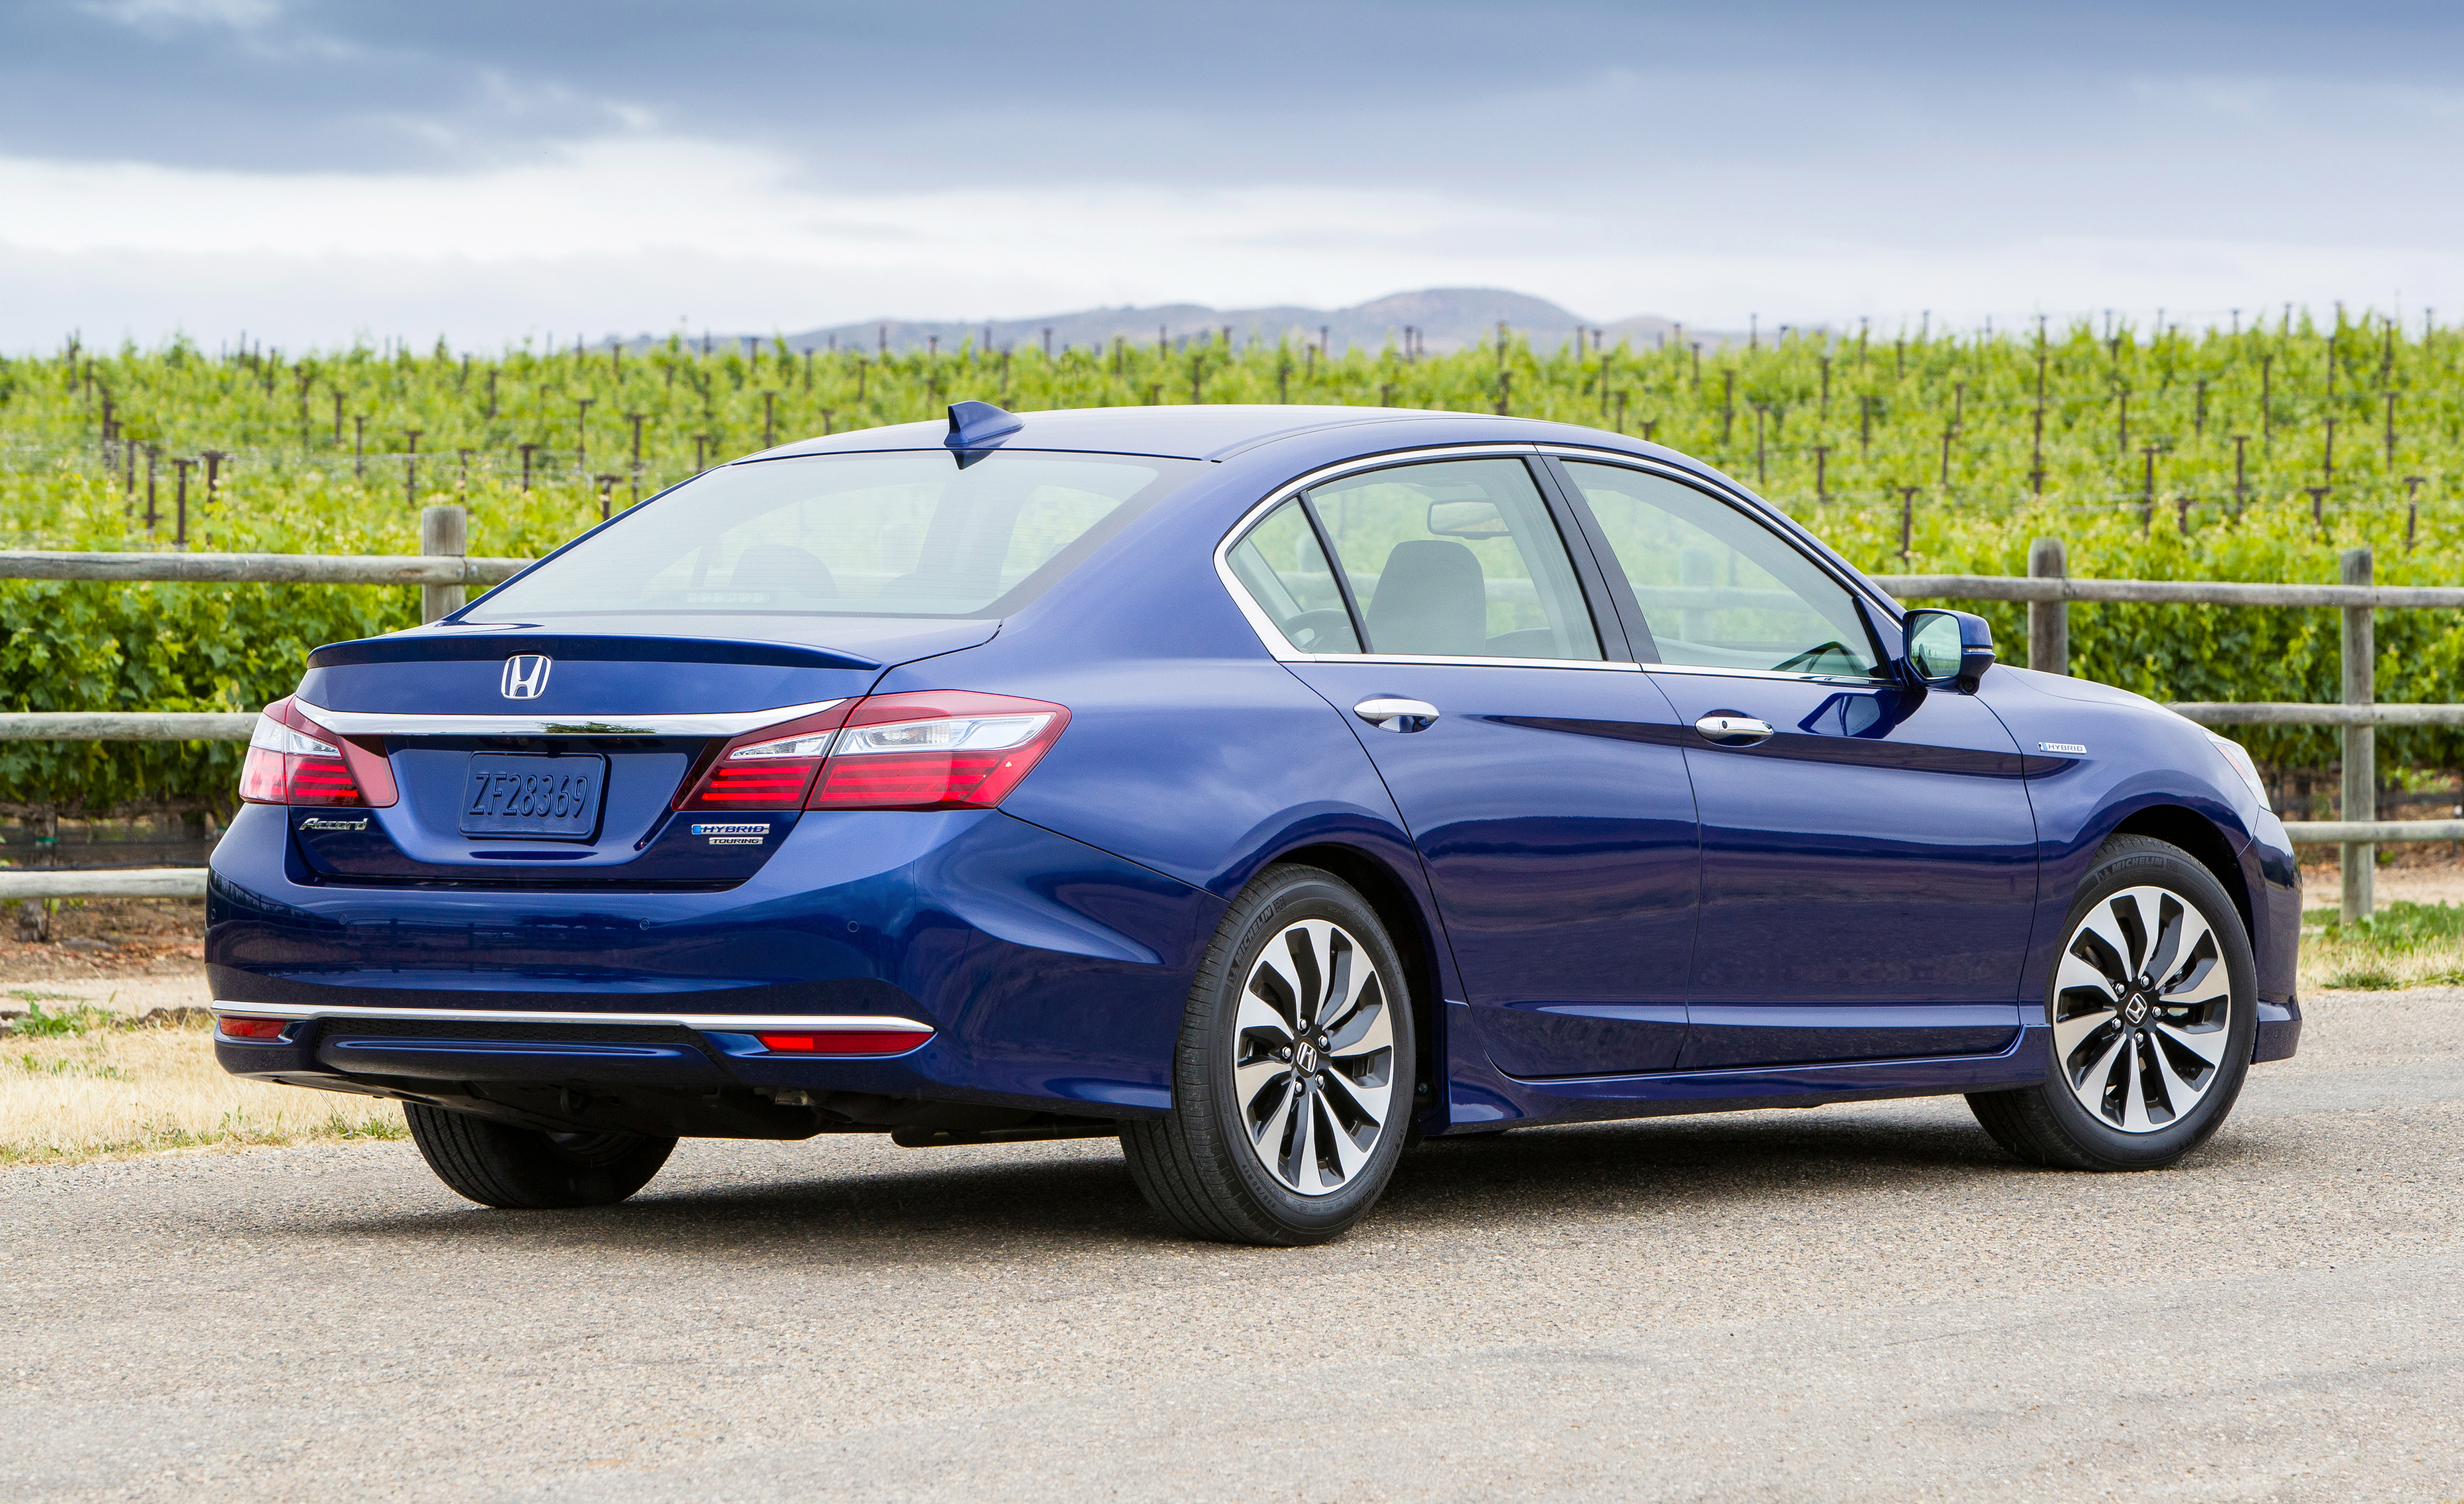 hybrid promised higher news honda sdn more trunk h accord economy fuel space